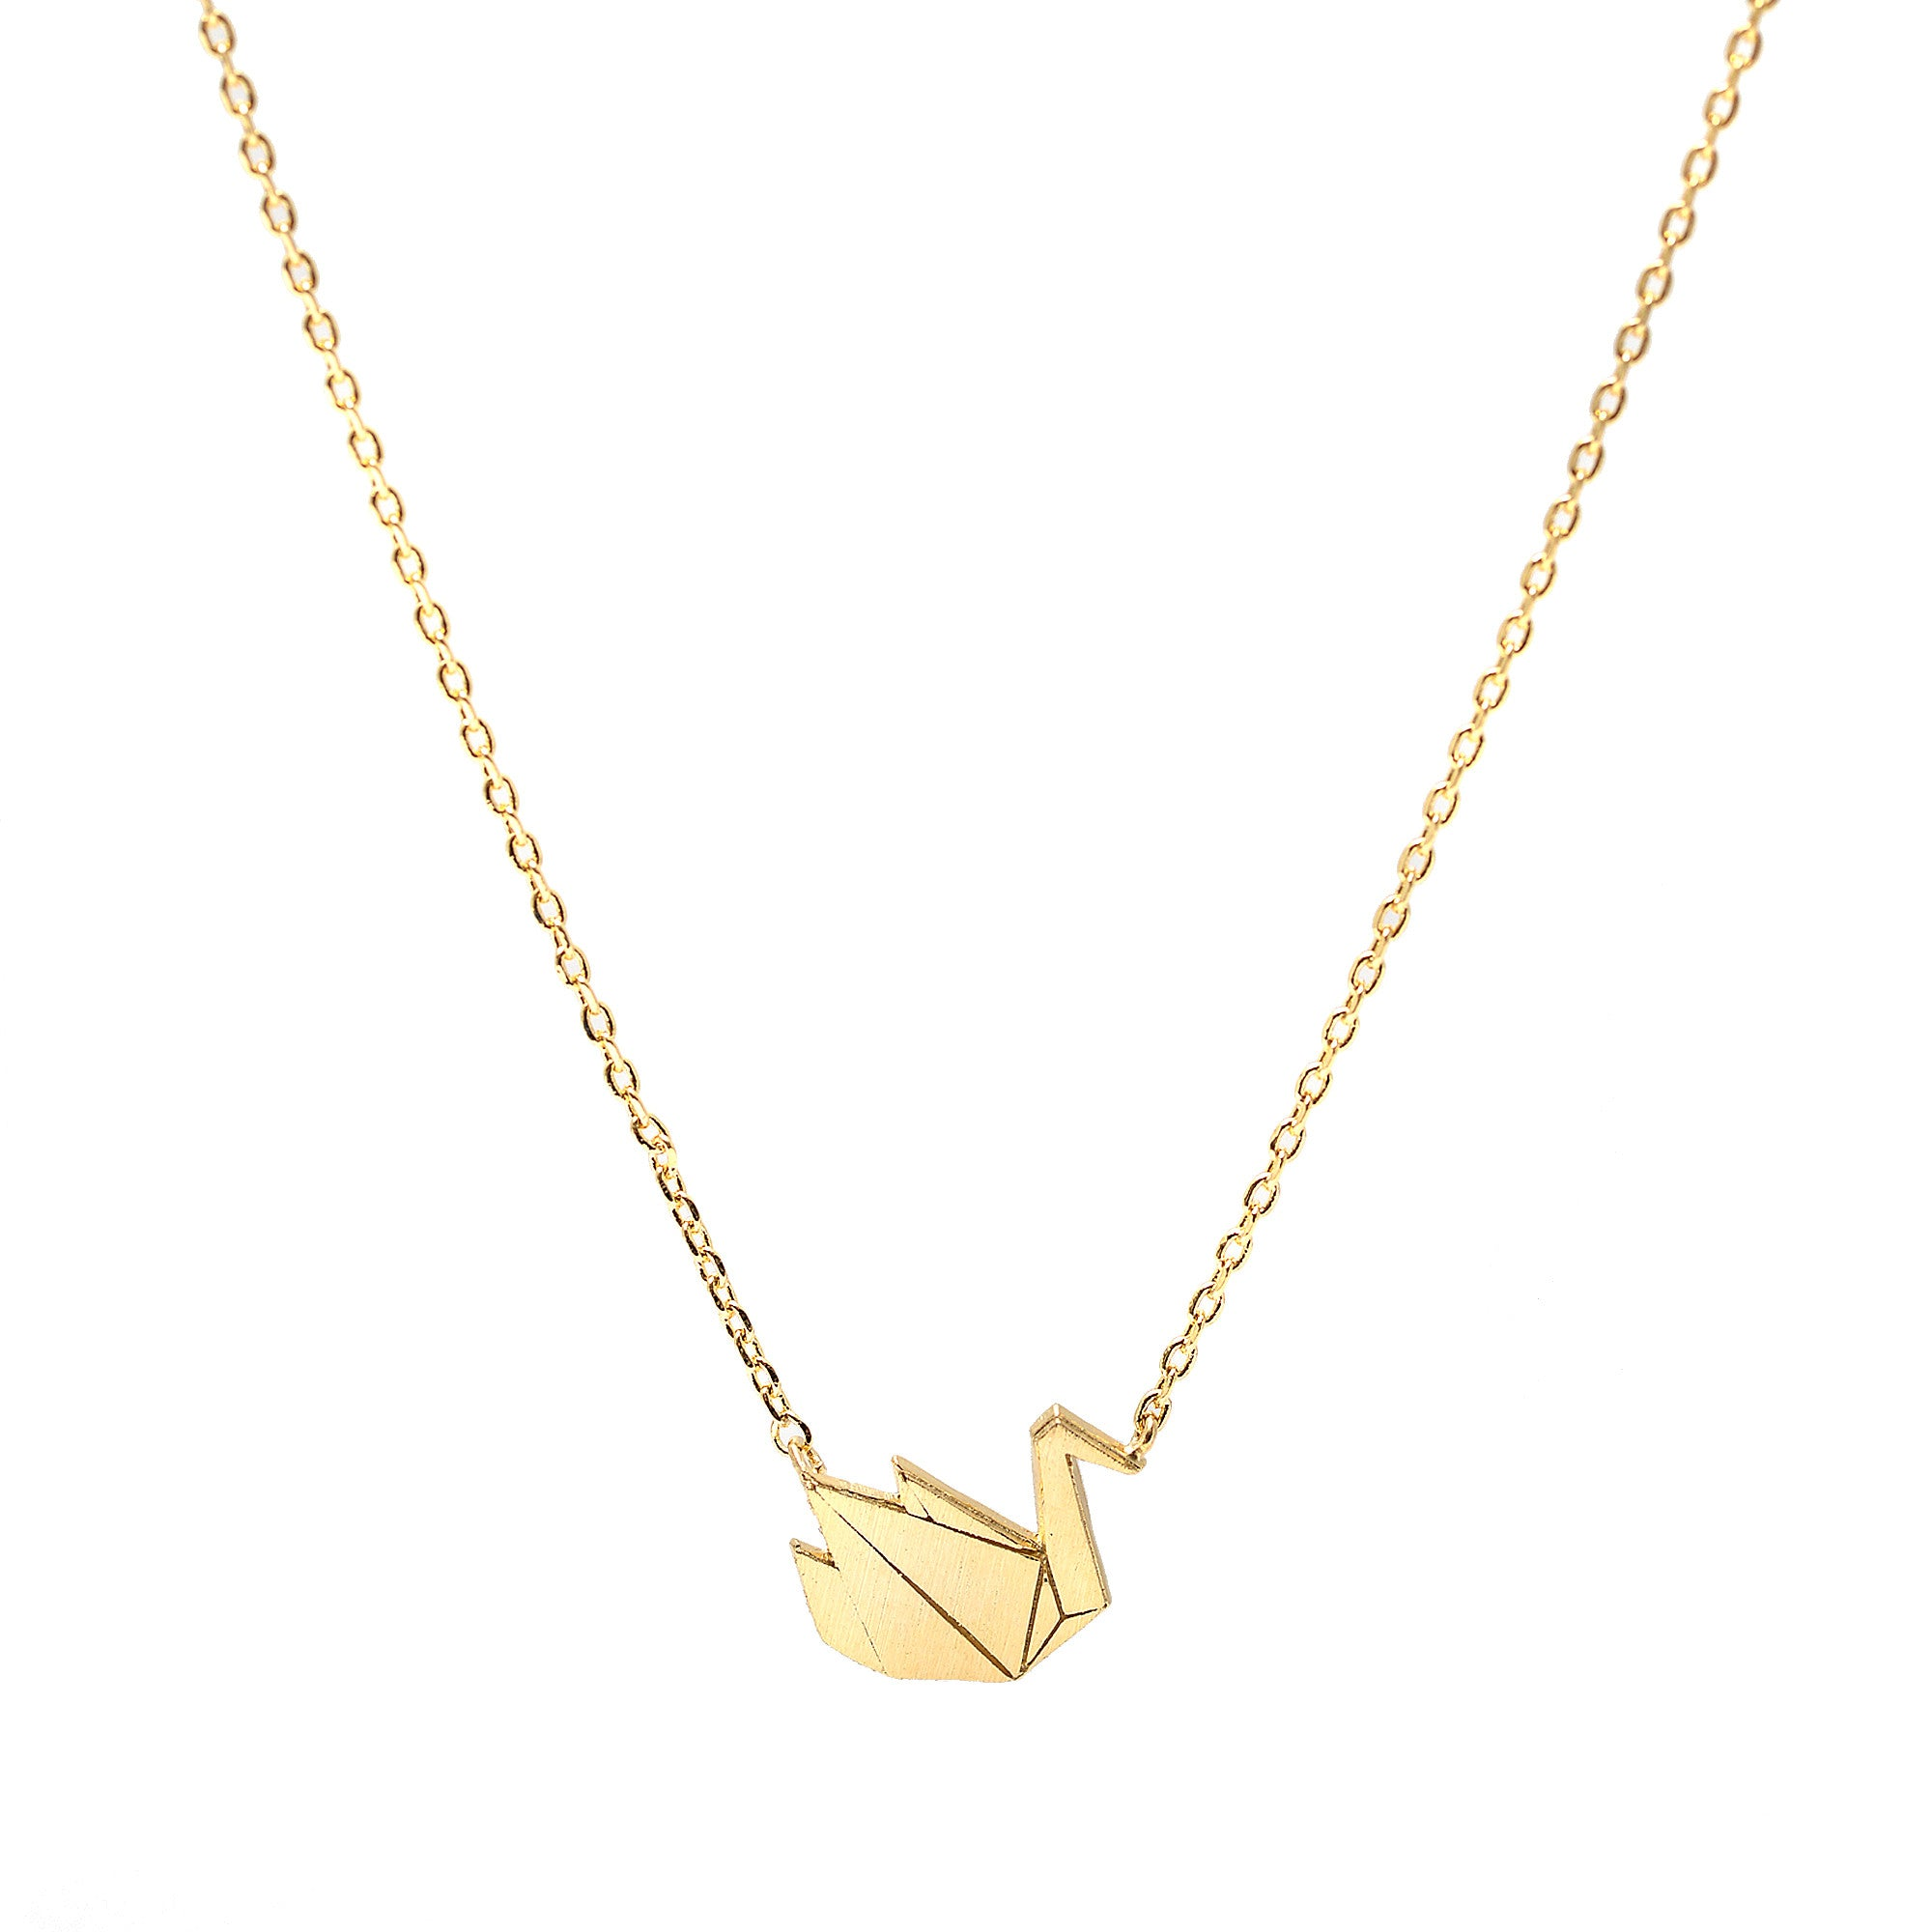 63fe048be82bf Handcrafted Brushed Metal Origami Crane Necklace